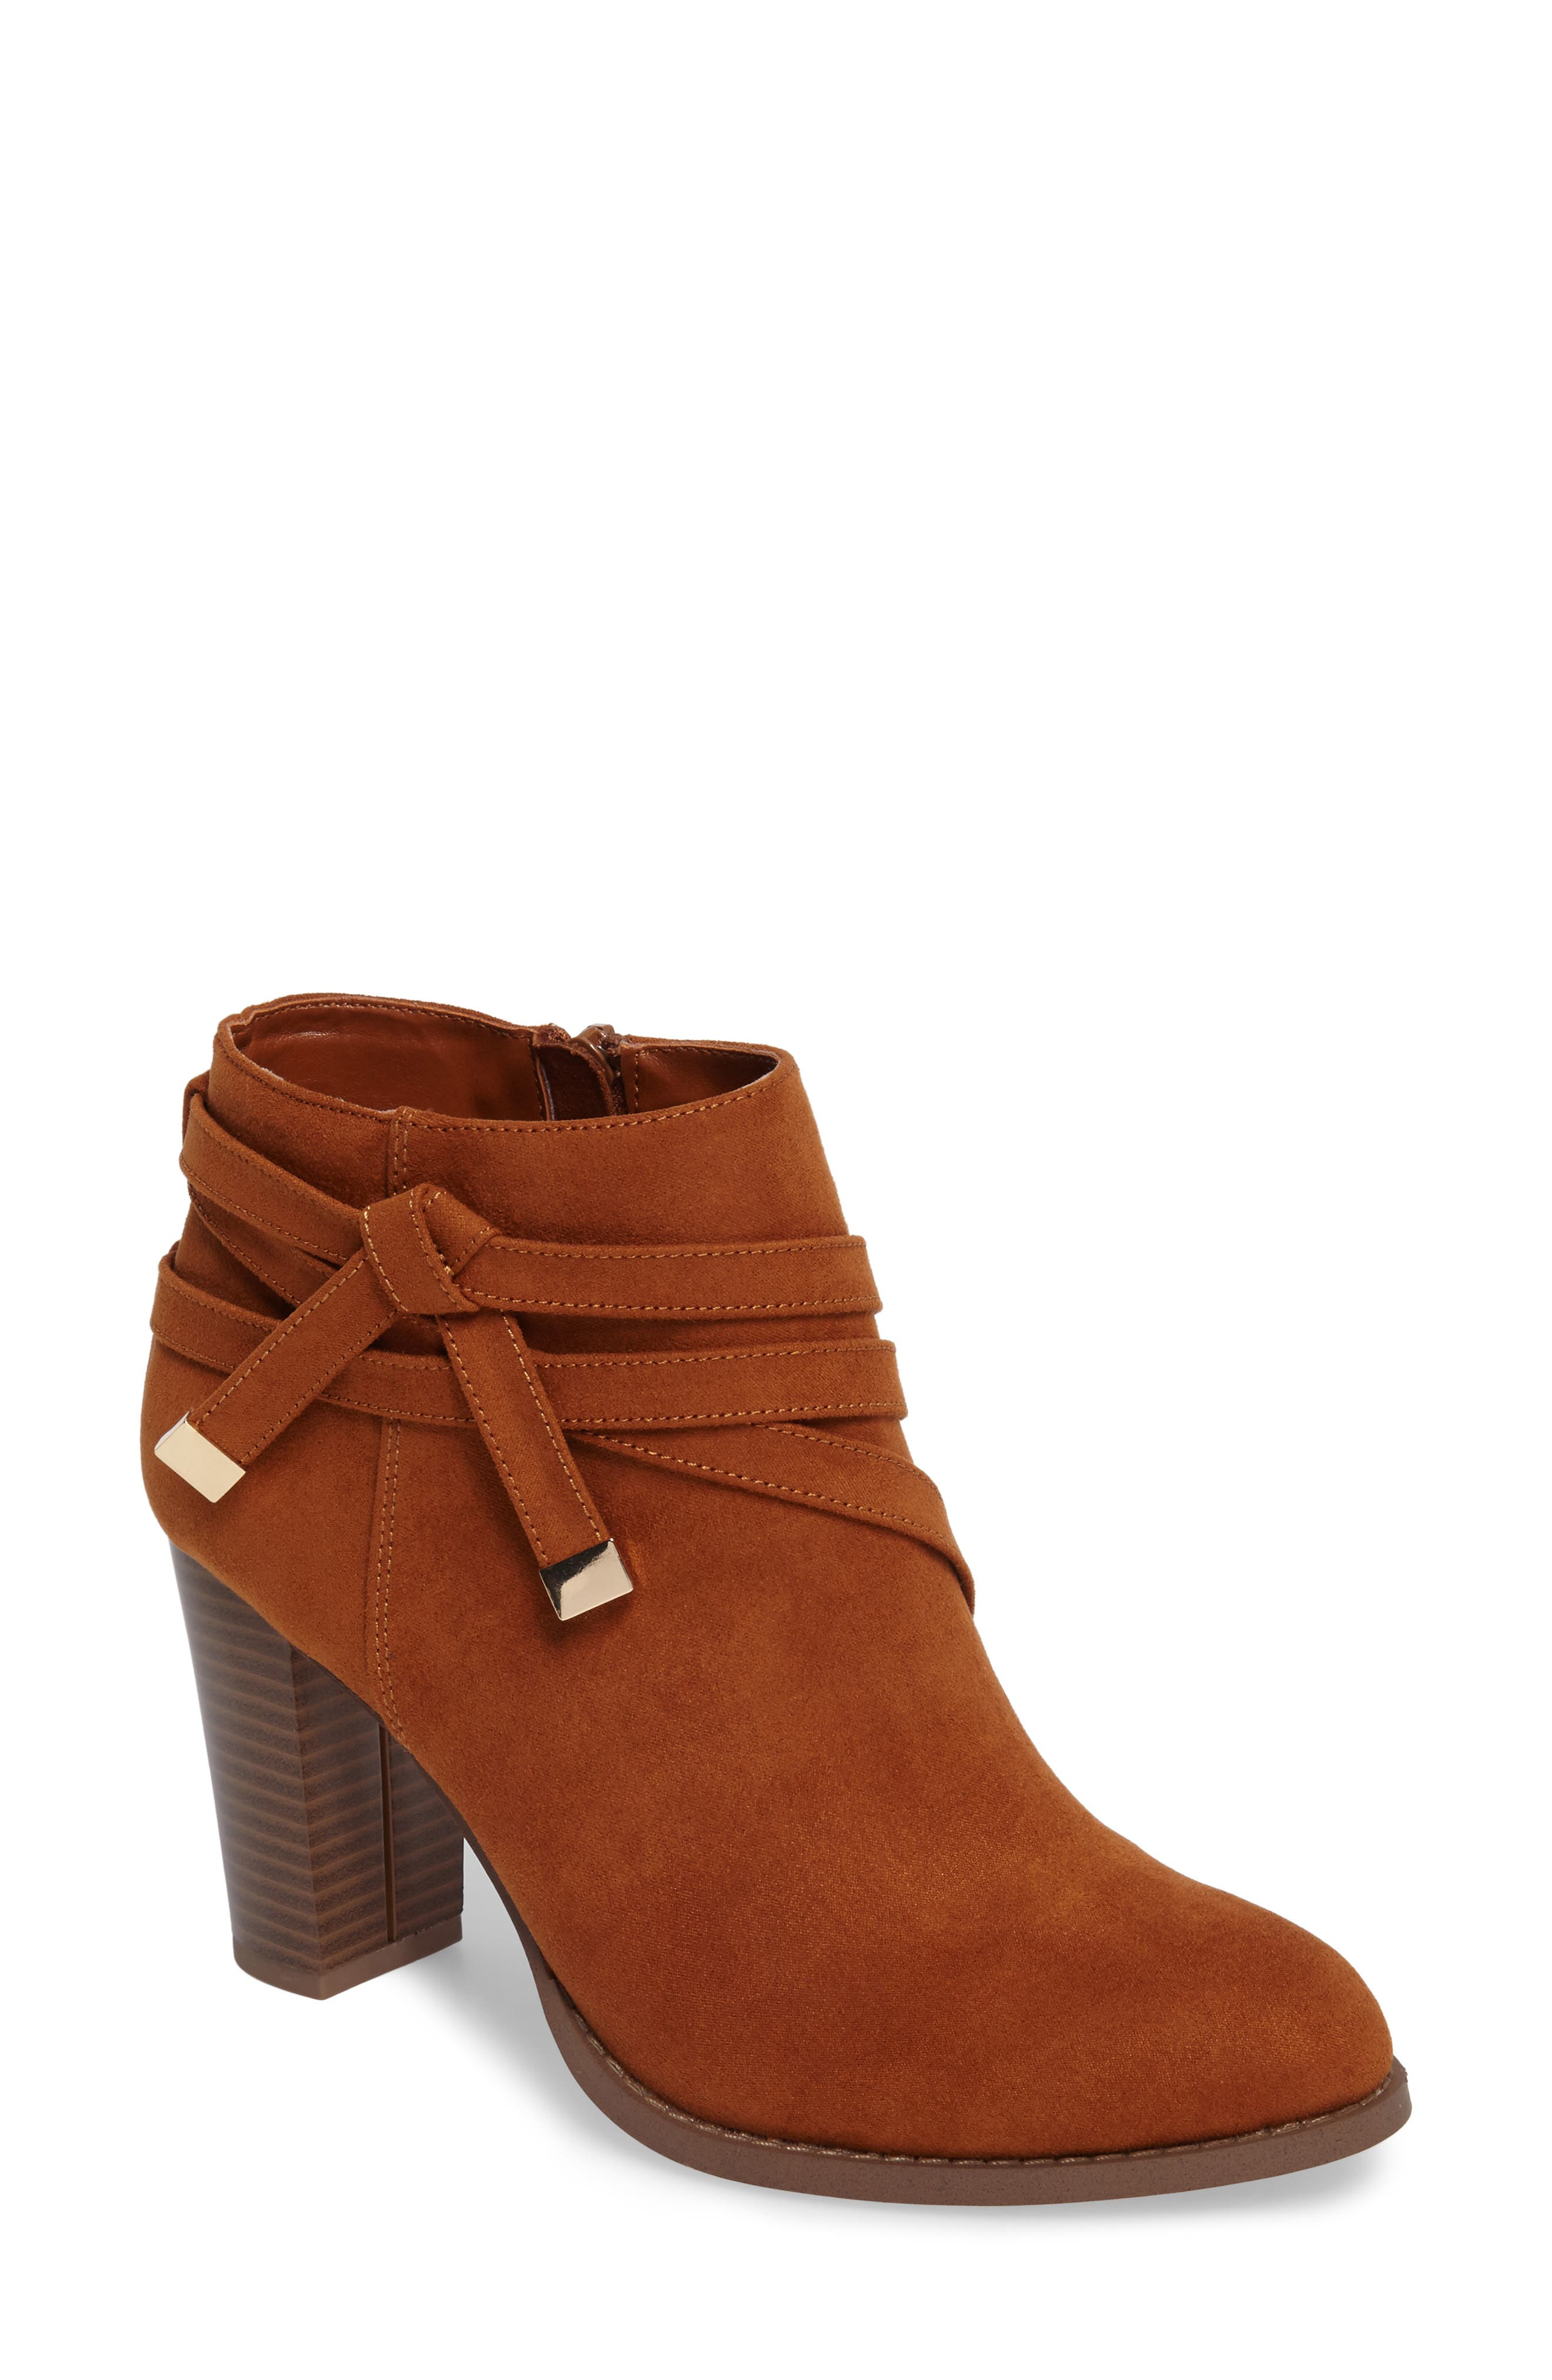 Renly Bootie,                             Main thumbnail 1, color,                             Tan Suede